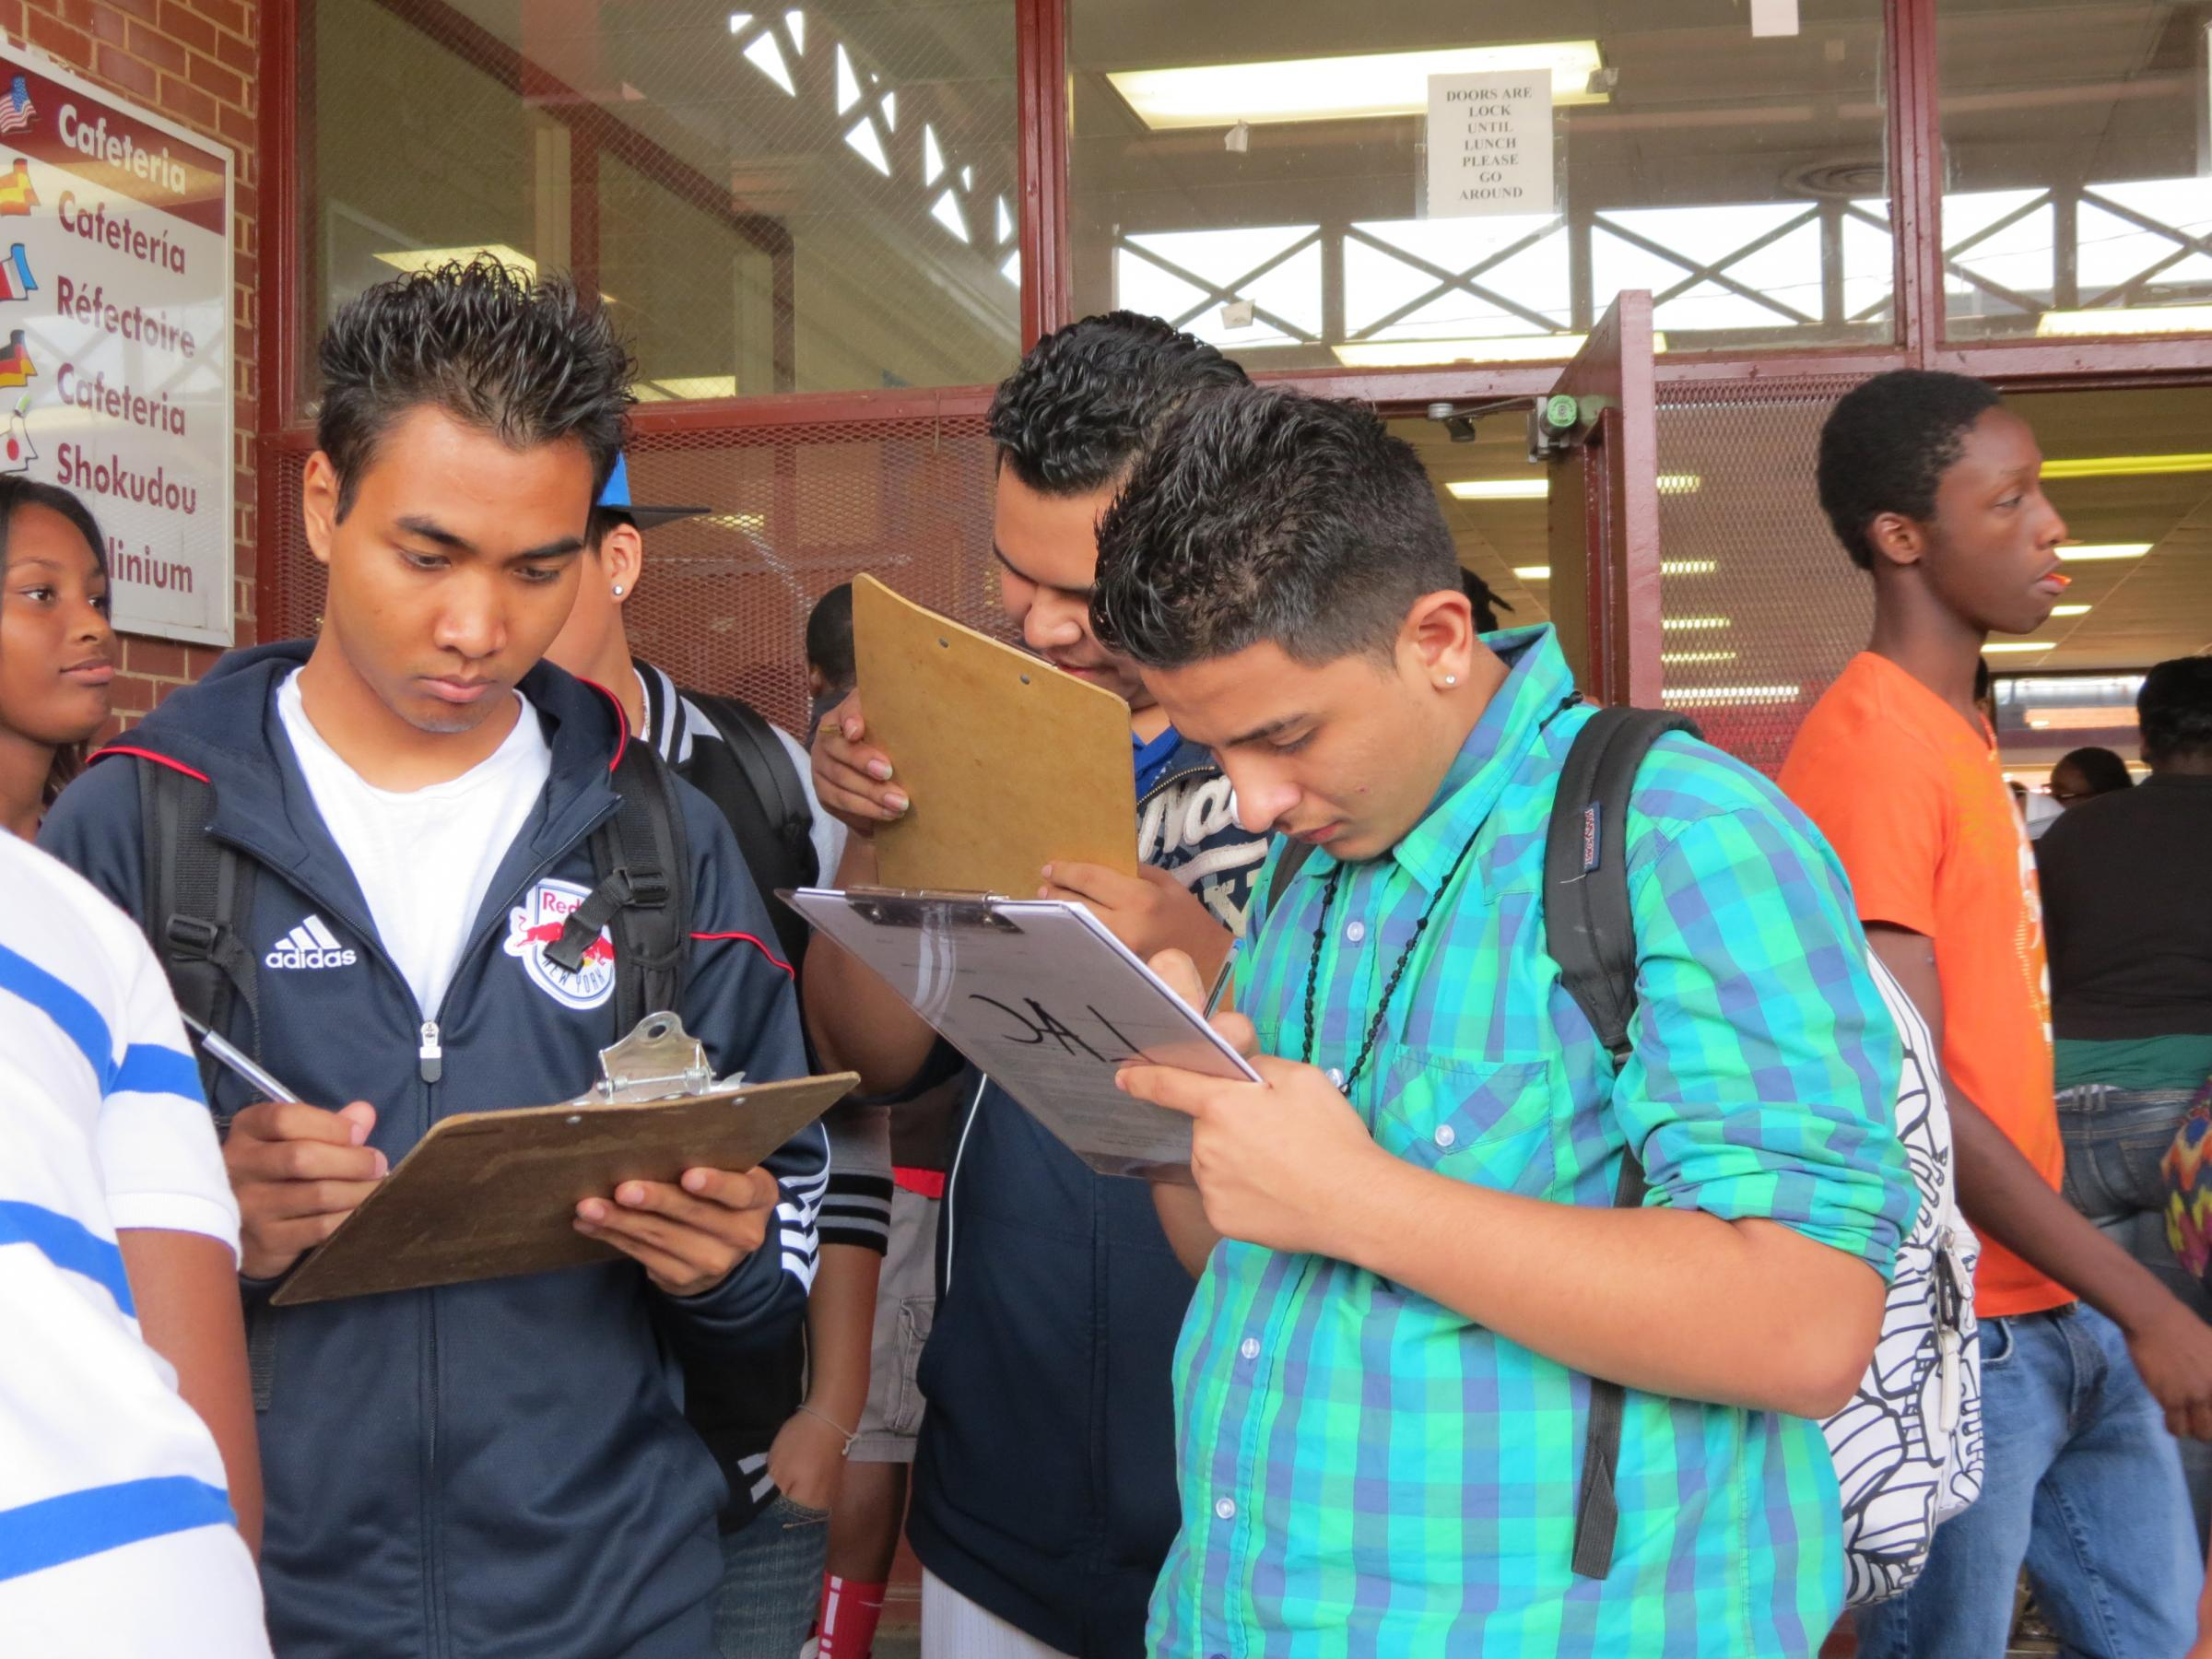 students registration during